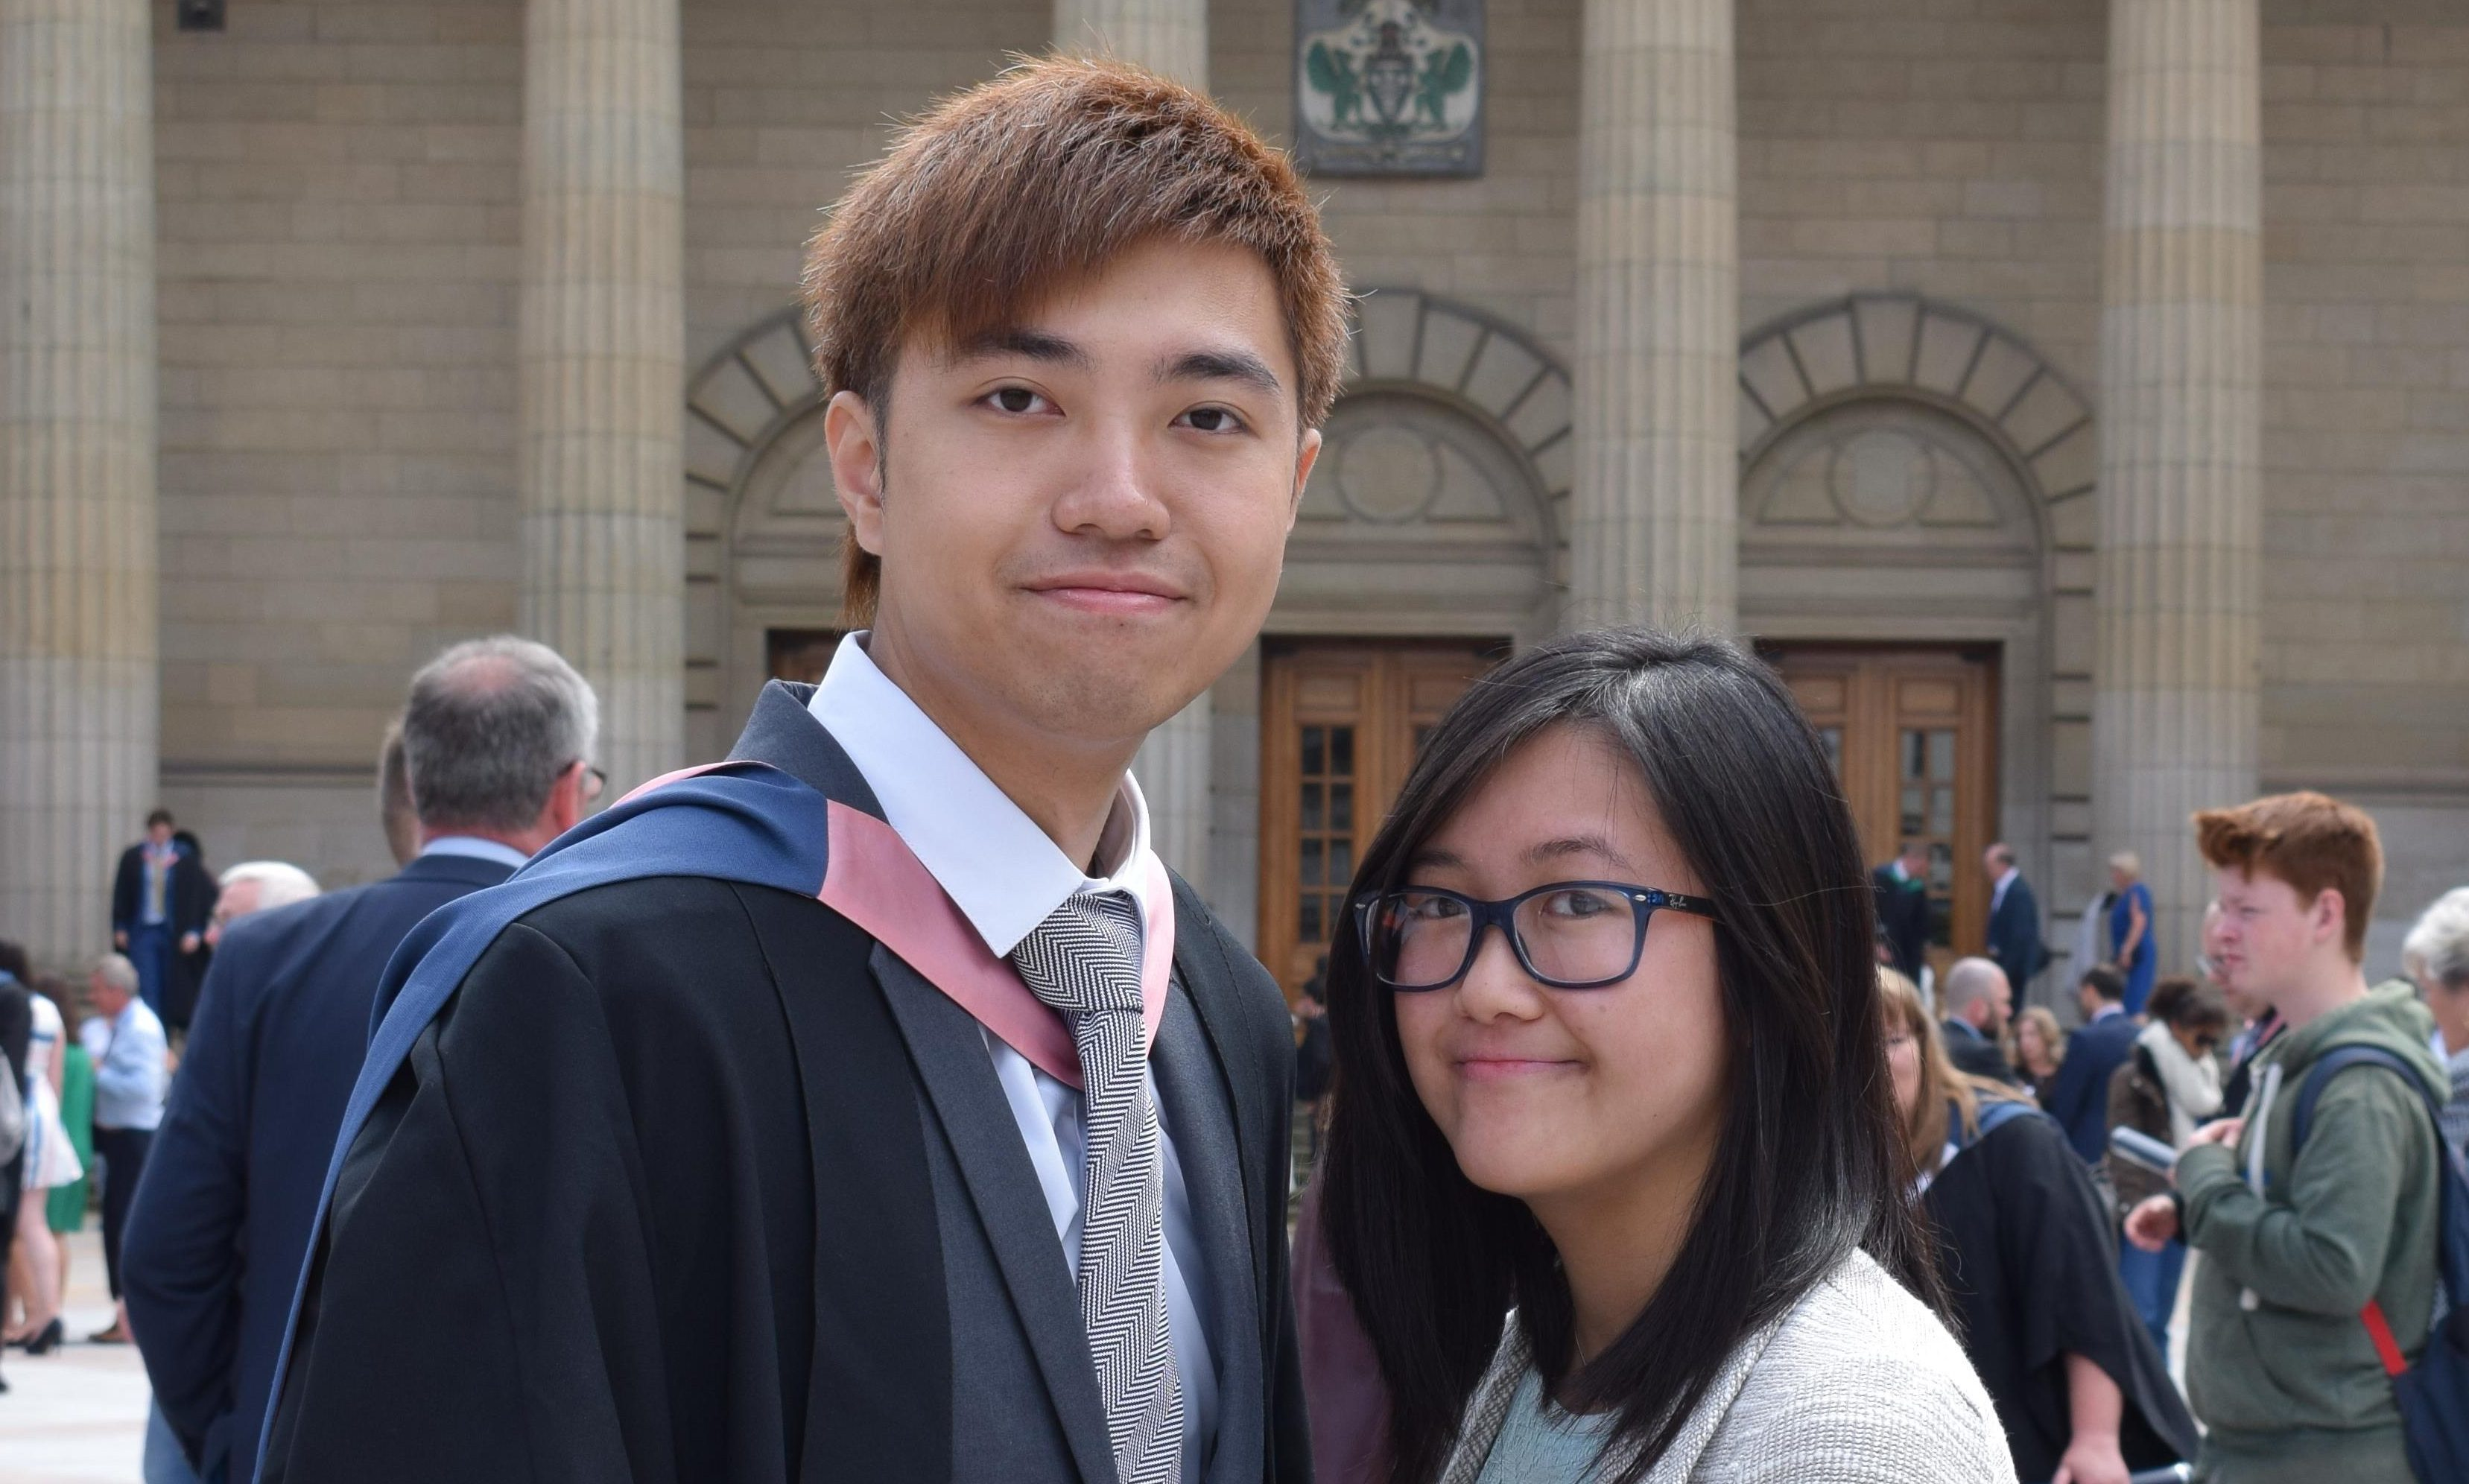 Abertay student Kenny Mok proposed to girlfriend May Wan.